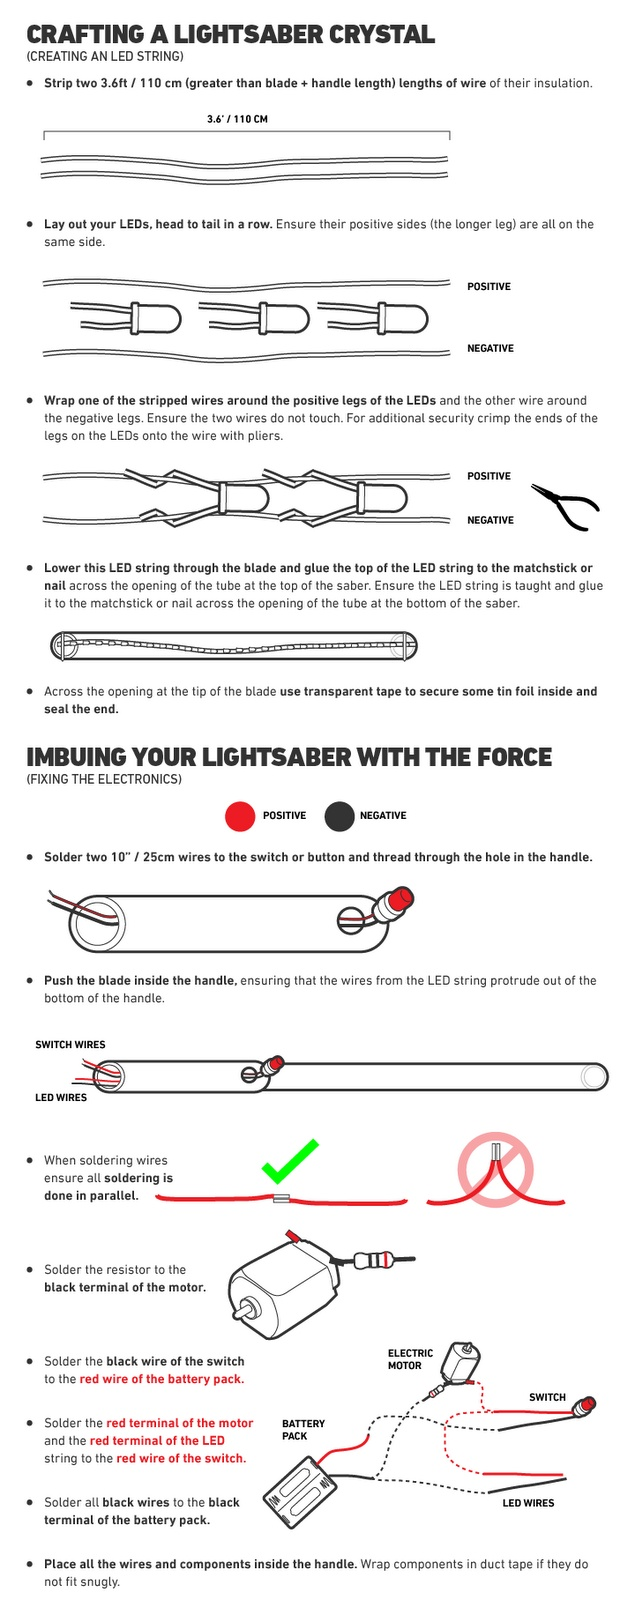 How to make your own female sonic character ehow - How To Make Your Own Lightsaber Part 3